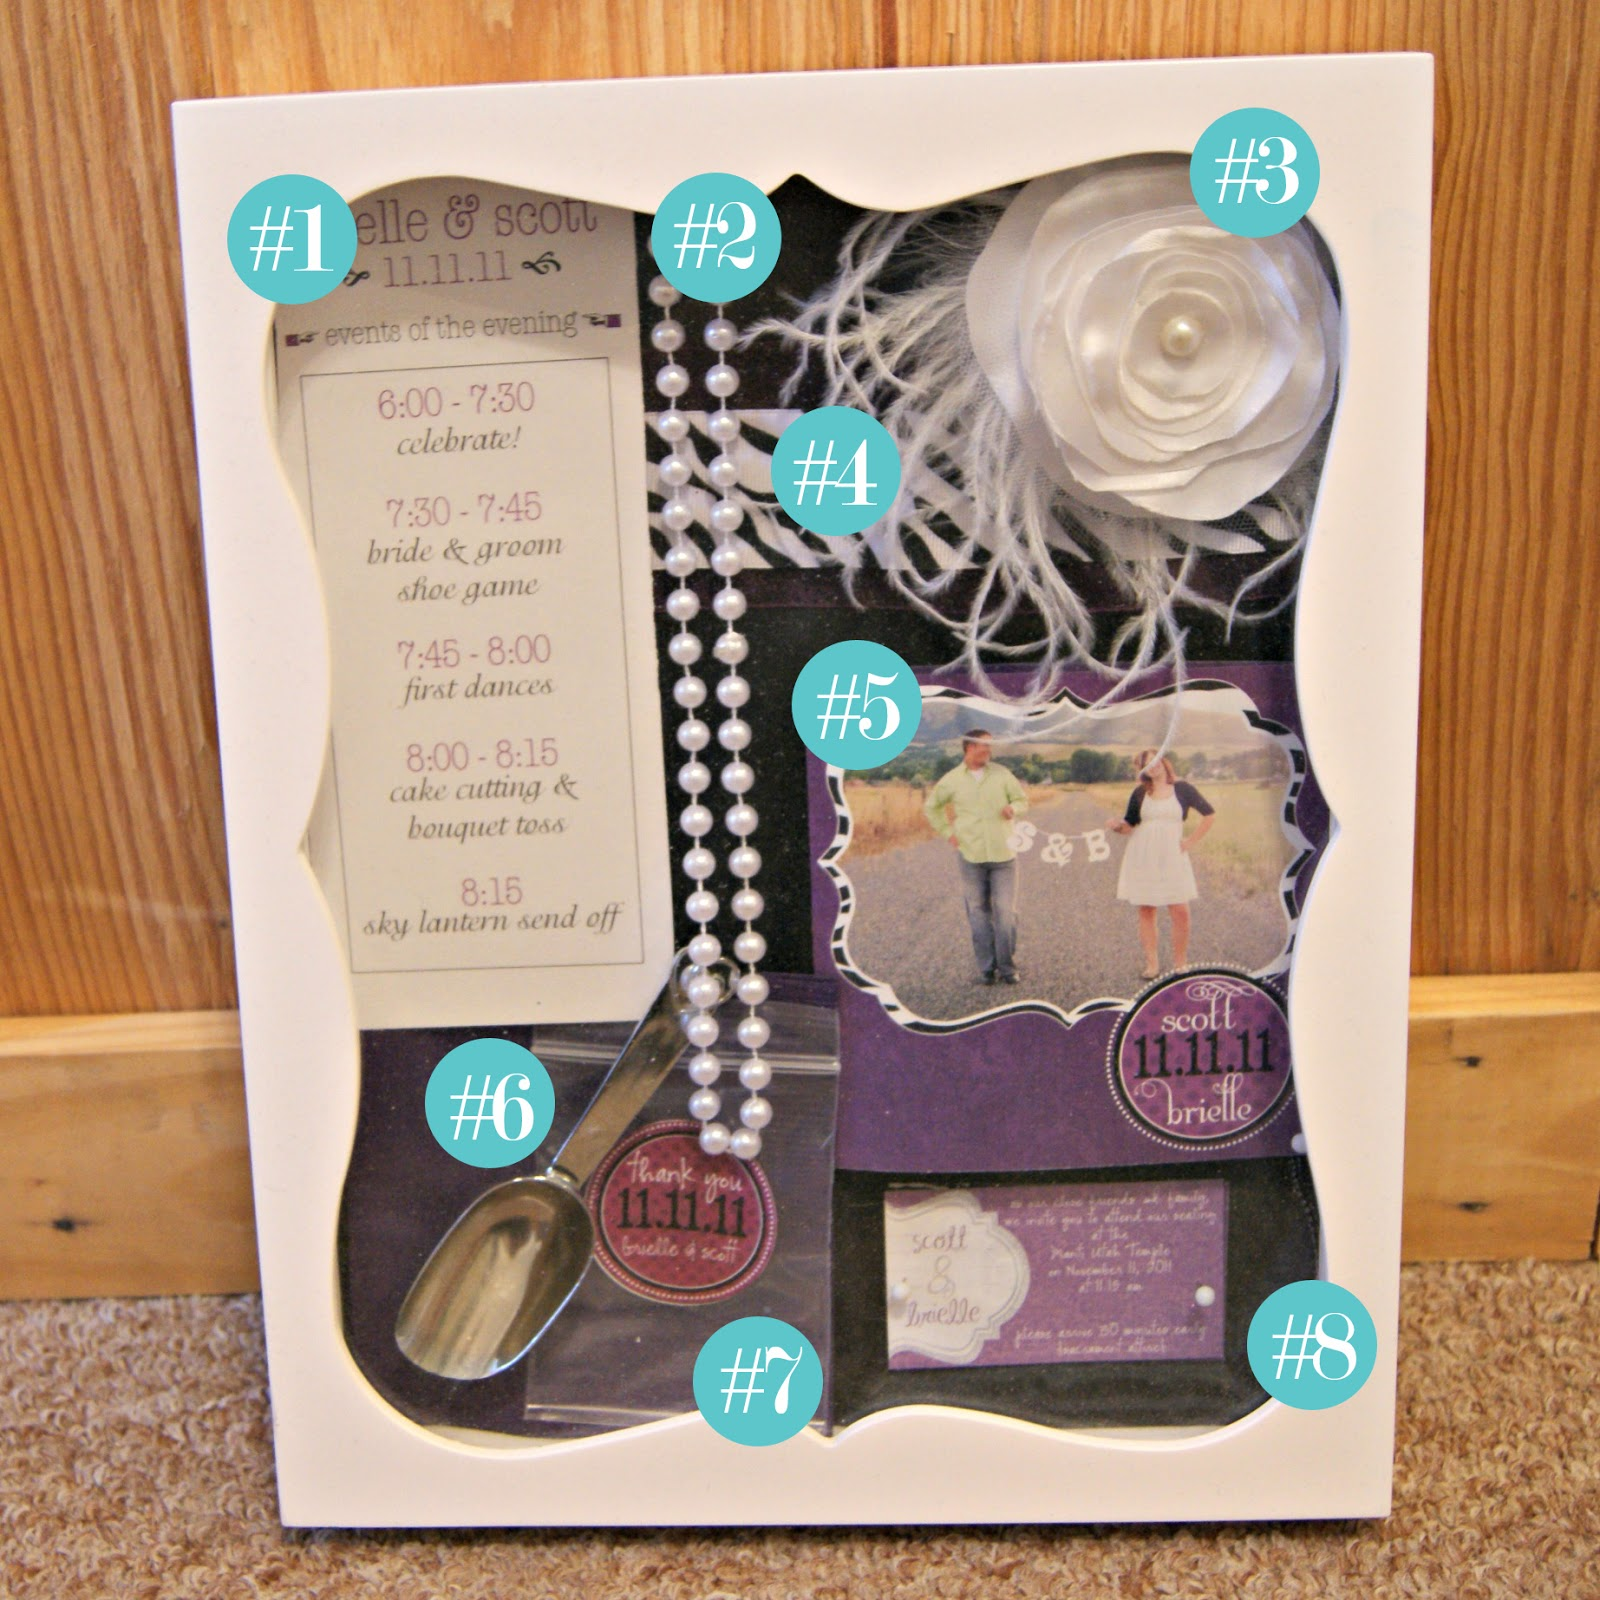 hobby+craft+wedding+invitation+ideas hobby lobby wedding invitations Shadow Box Hobby Lobby 10 with 50 off coupon DSC